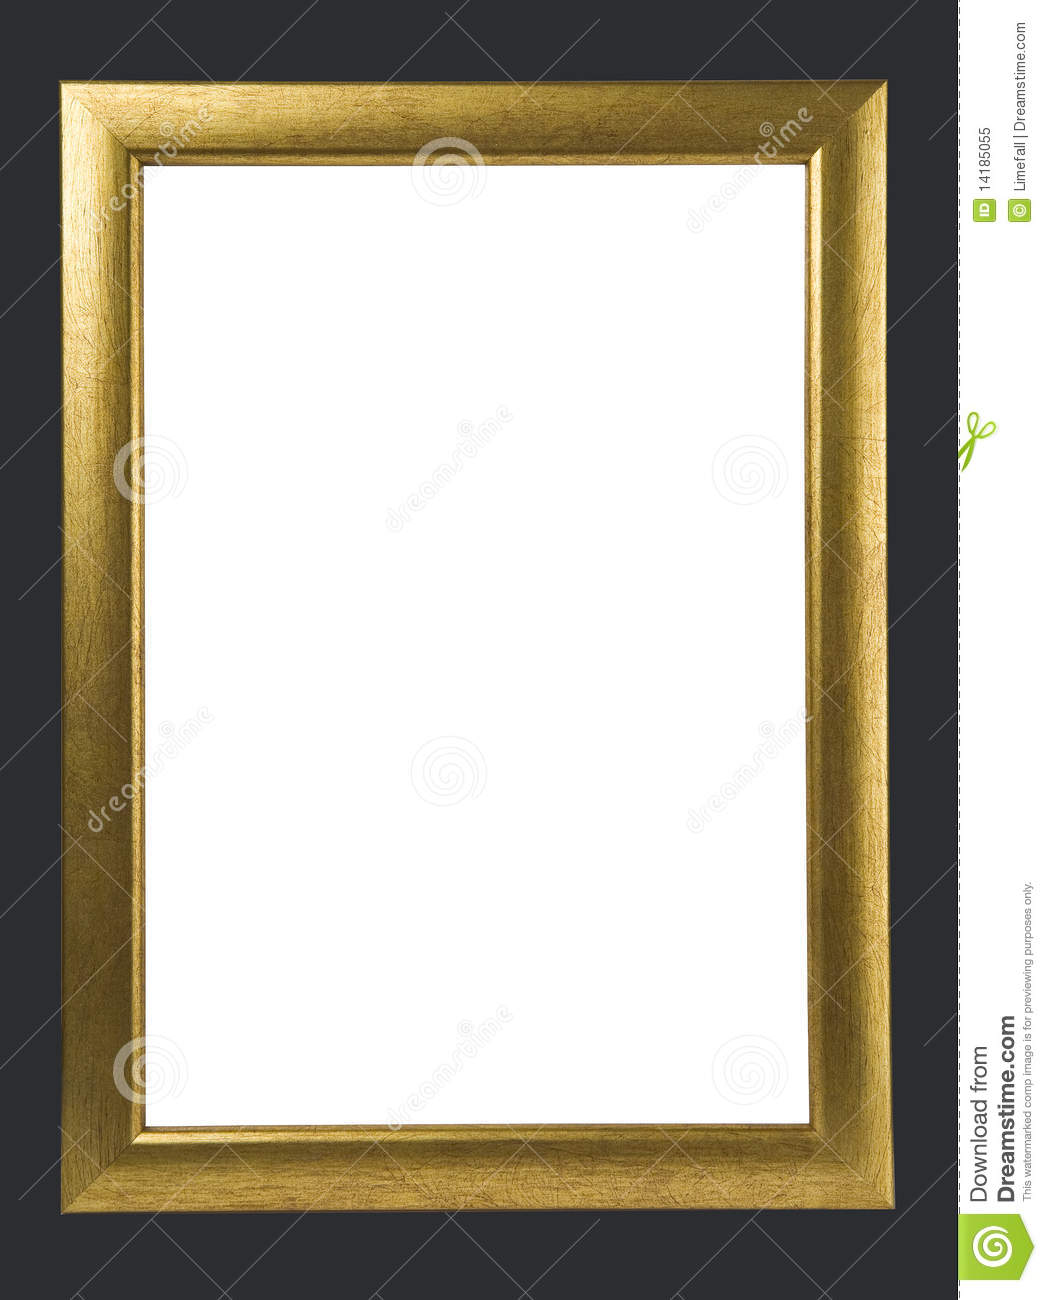 Antique golden frame stock image. Image of fancy, frames - 14185055